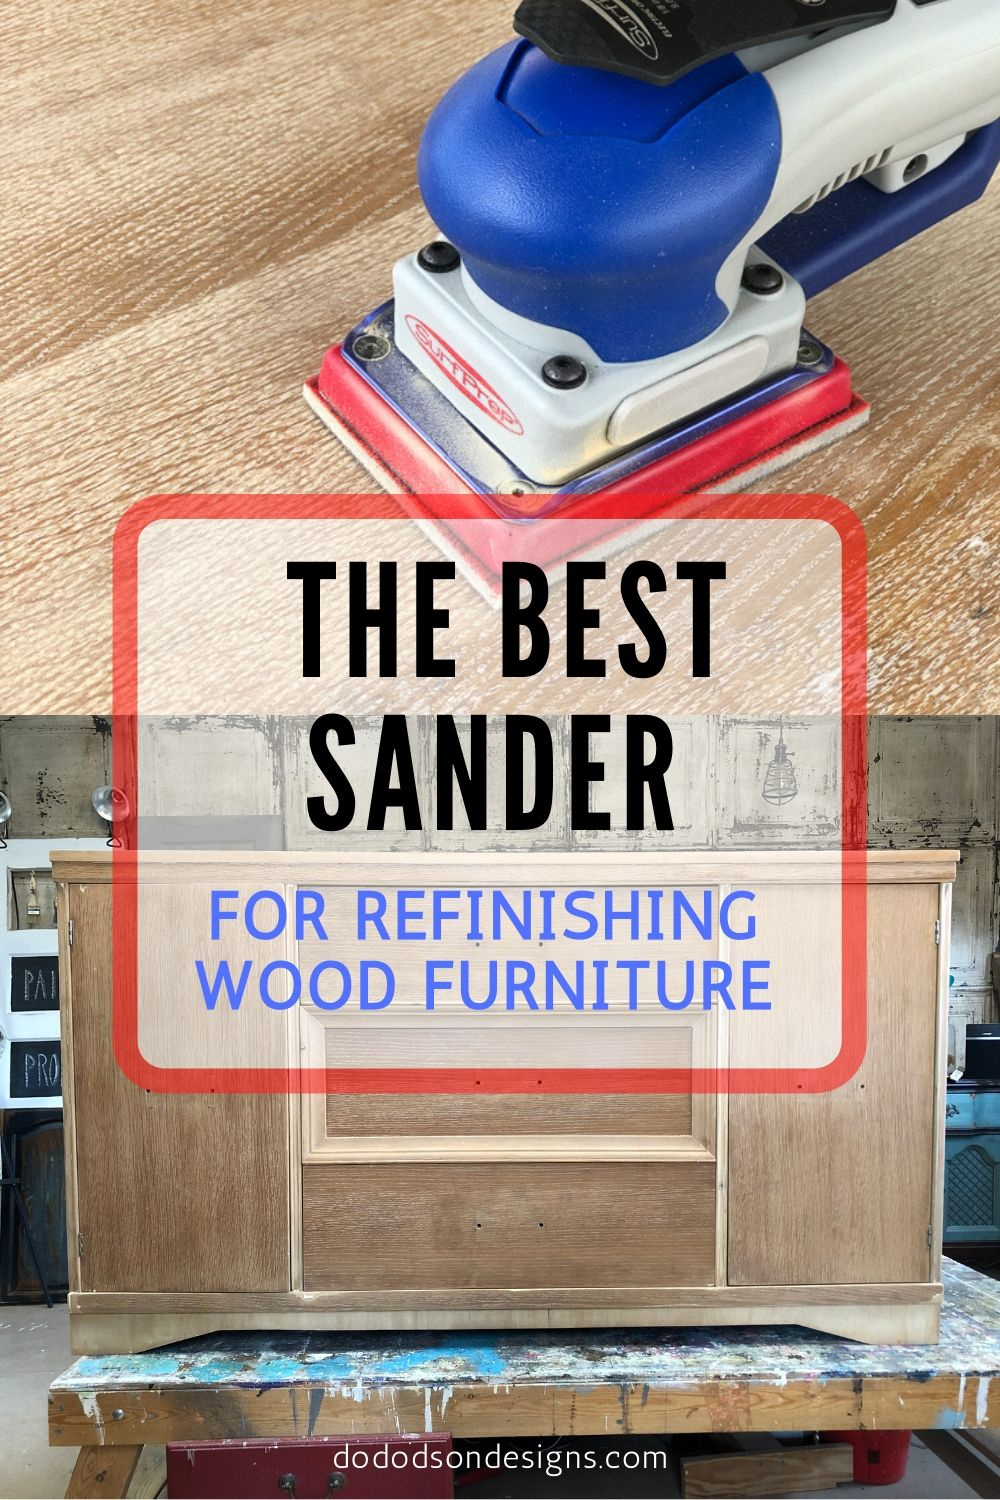 The Best Sander For Refinishing Wood Furniture